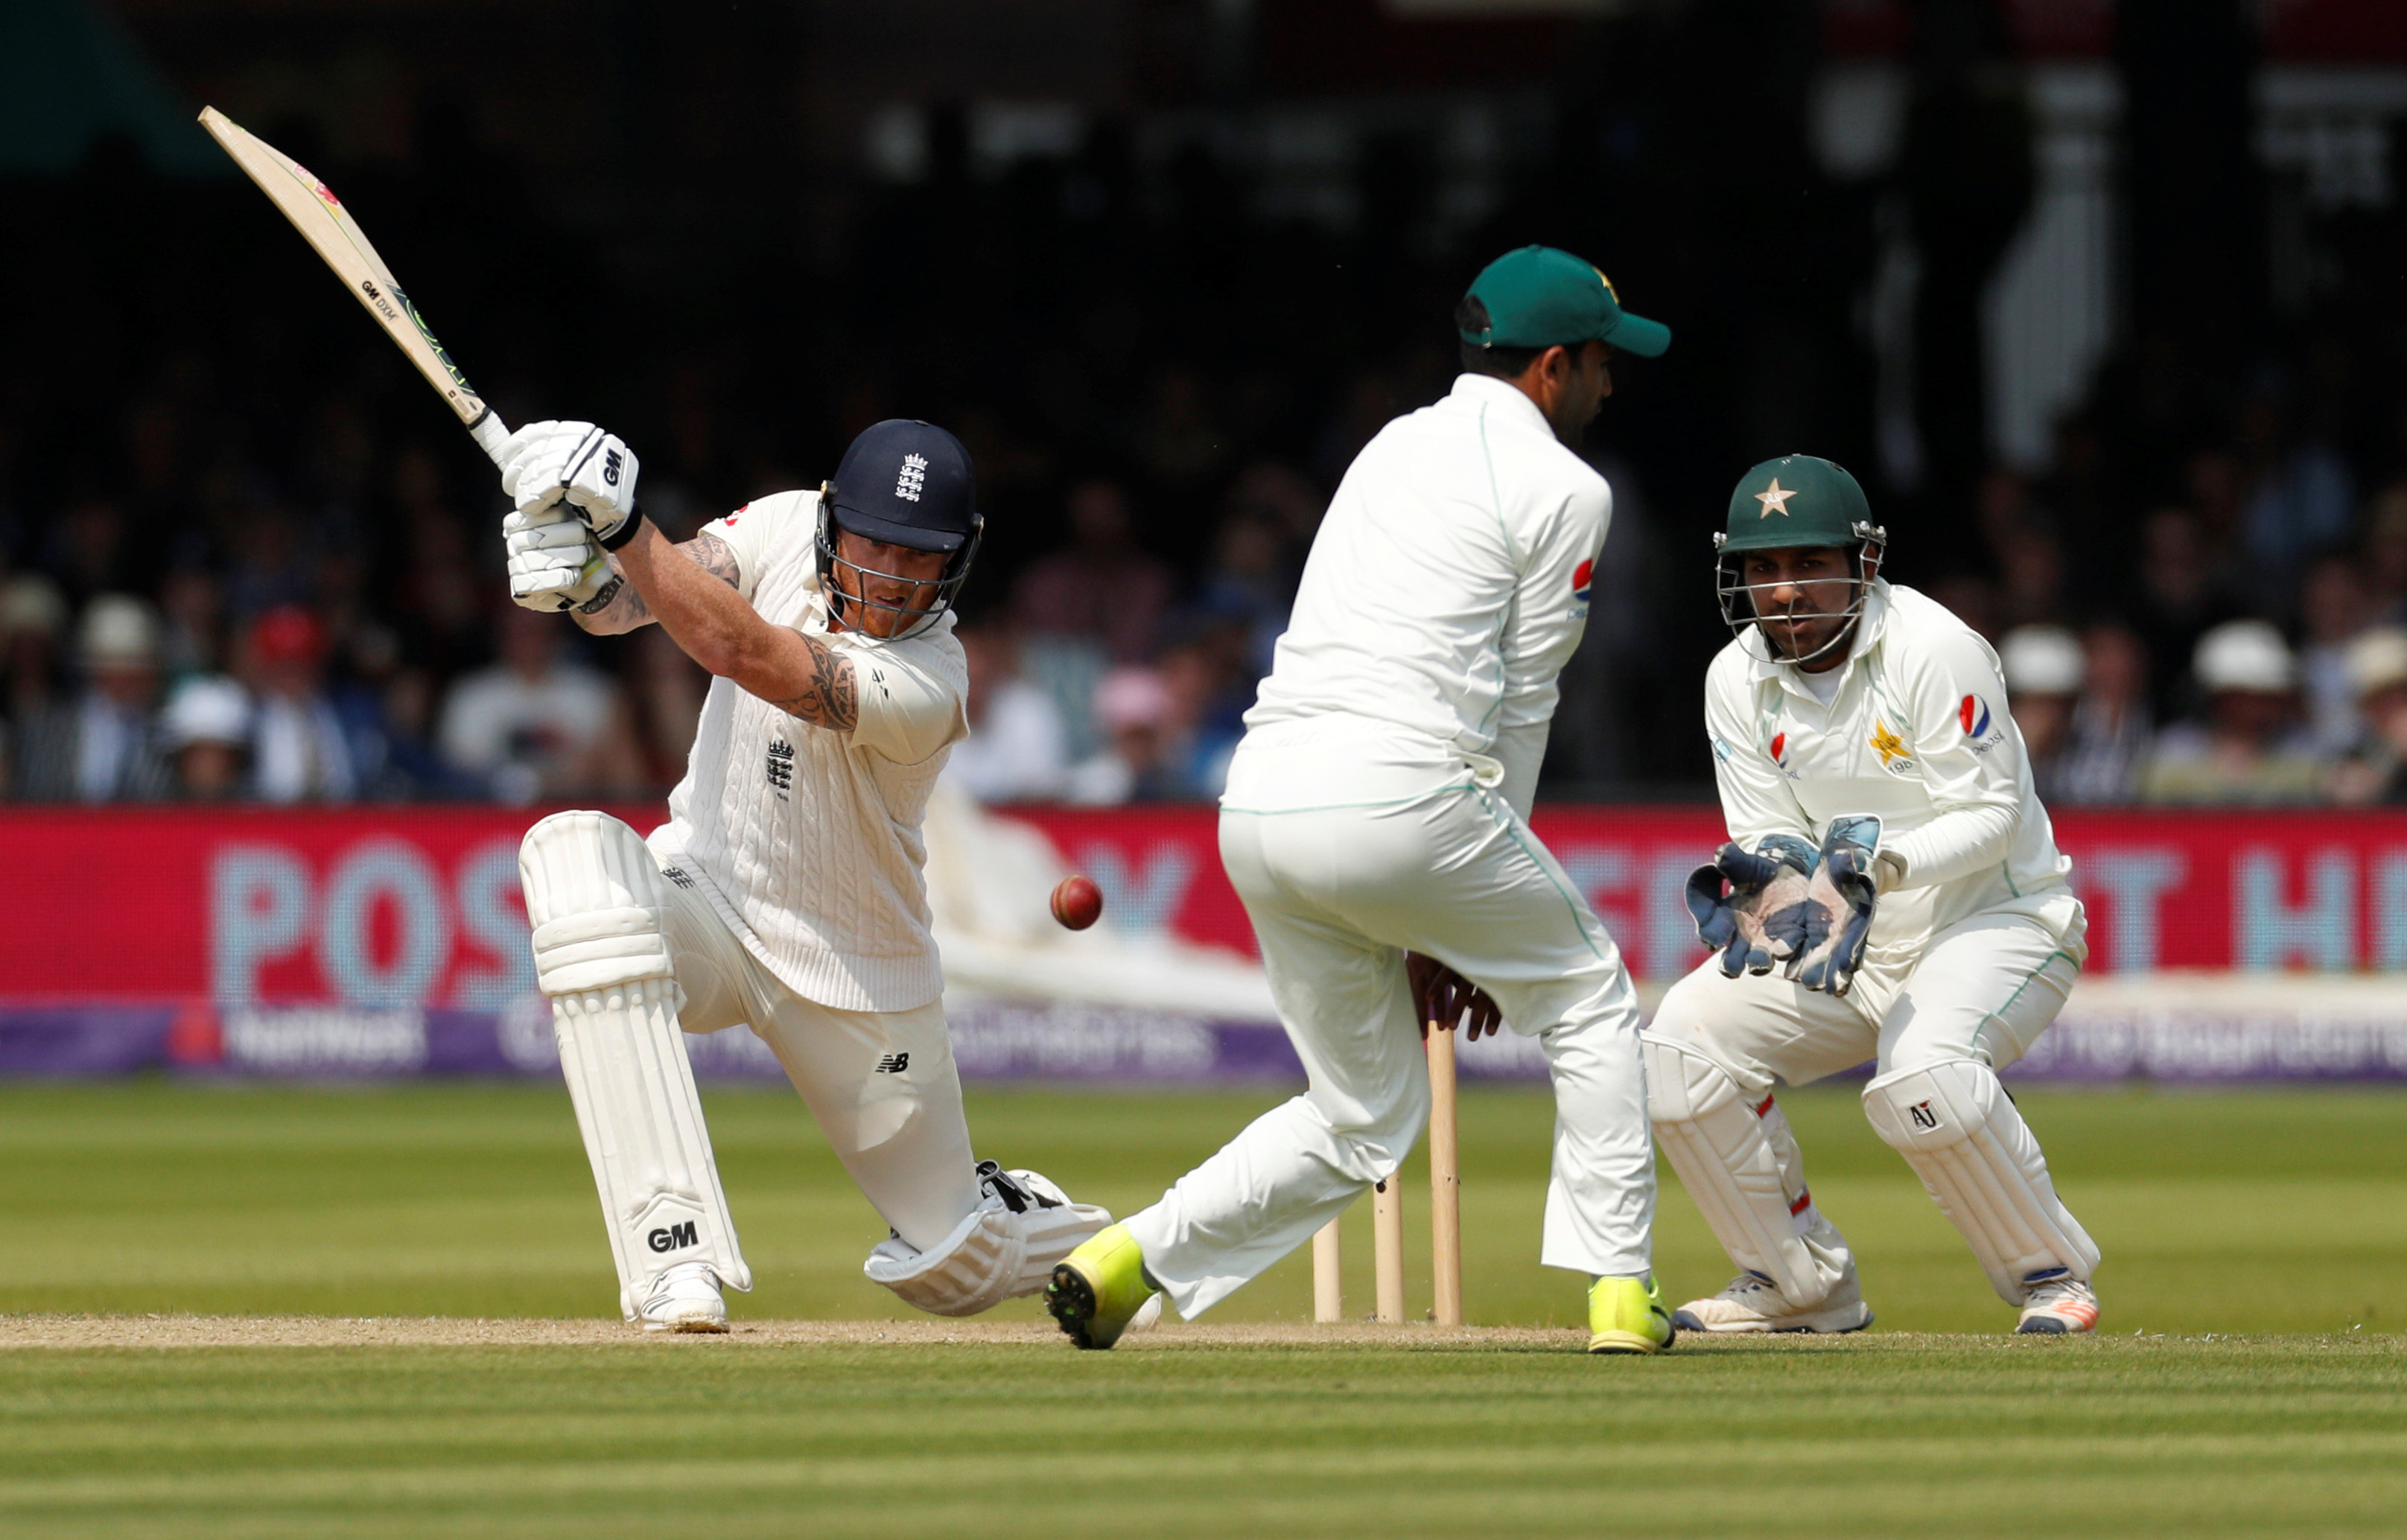 England v Pakistan: Jos Buttler & Dom Bess star as England level series